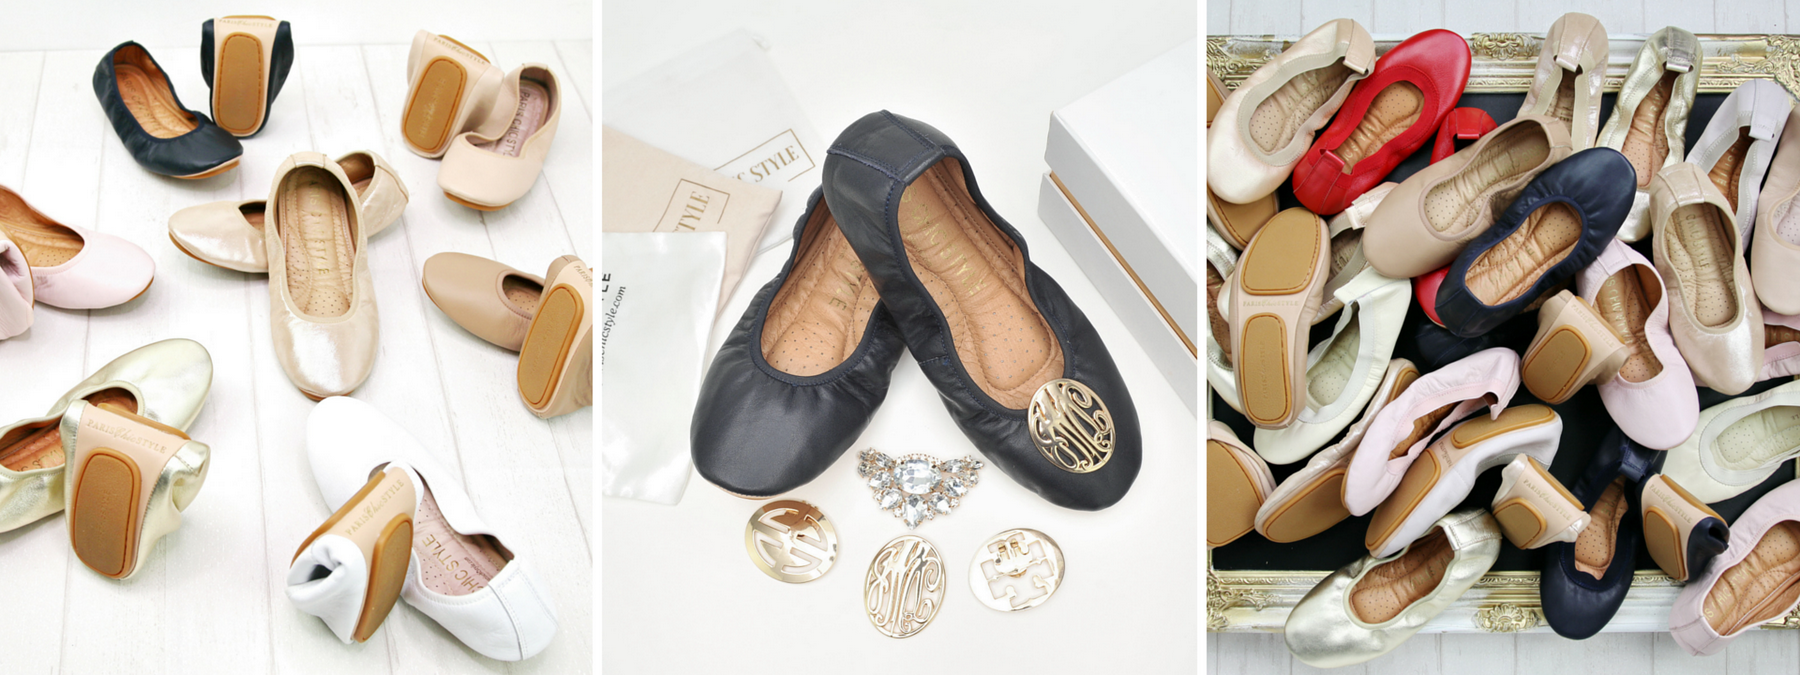 Paris Chic Style Foldable Ballet Flats Kickstarter Email_resize